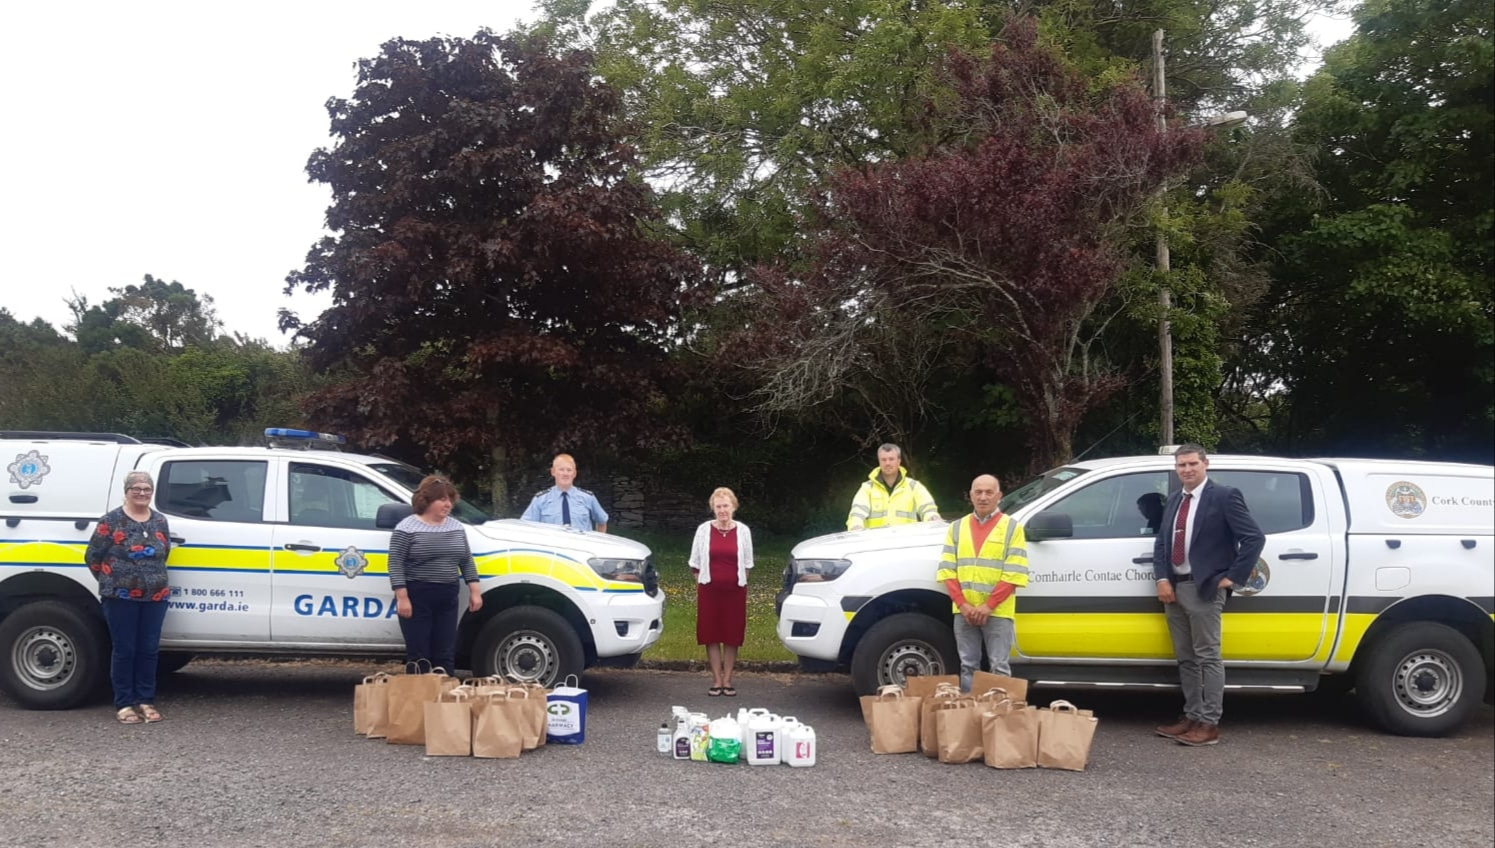 Gardaí and Ballydehob Community Alert Group to distribute Care Packs in the Mizen Area